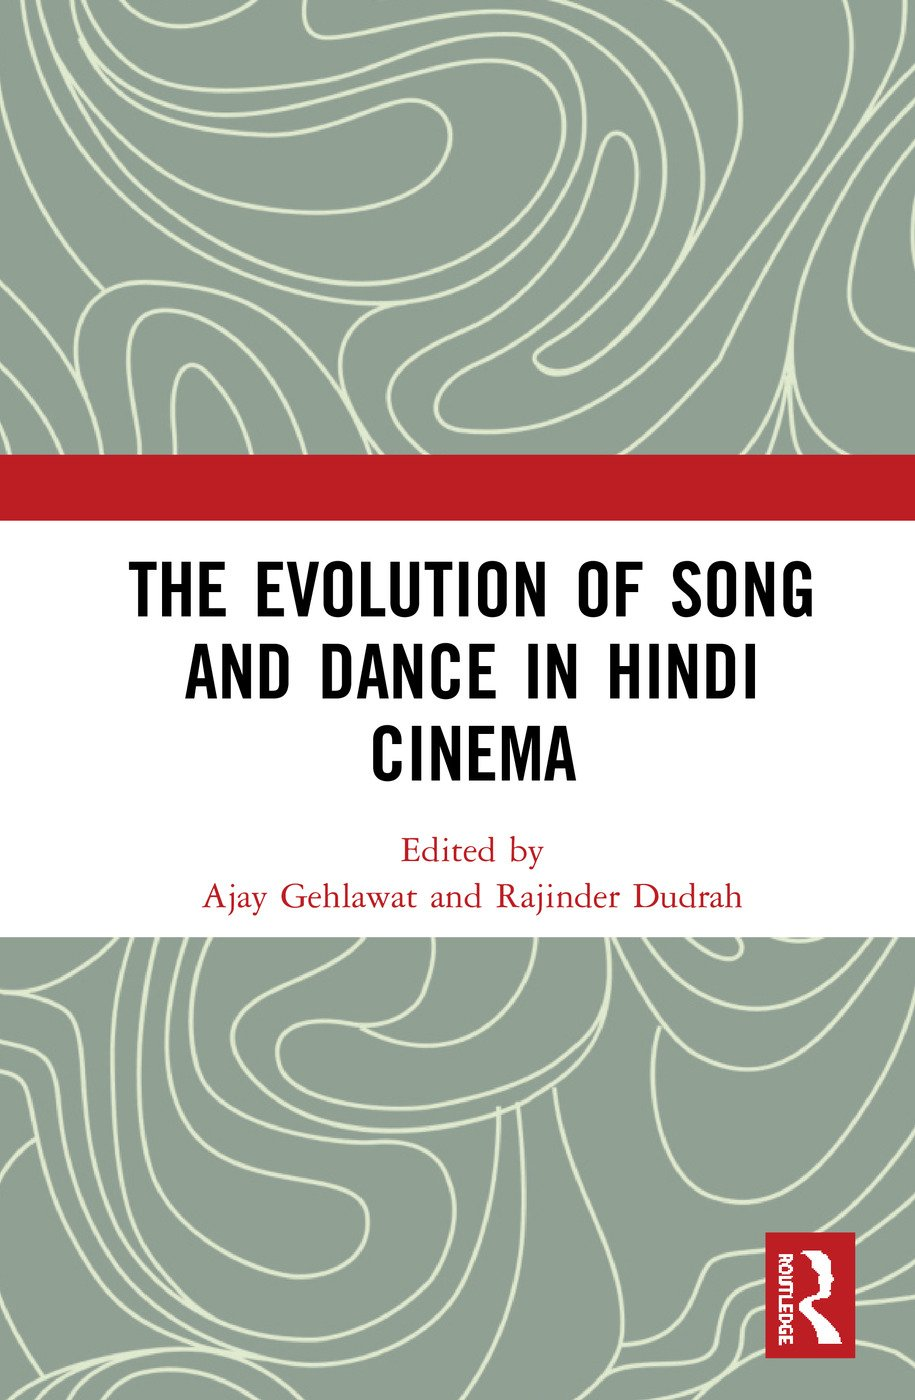 The Evolution of Song and Dance in Hindi Cinema book cover